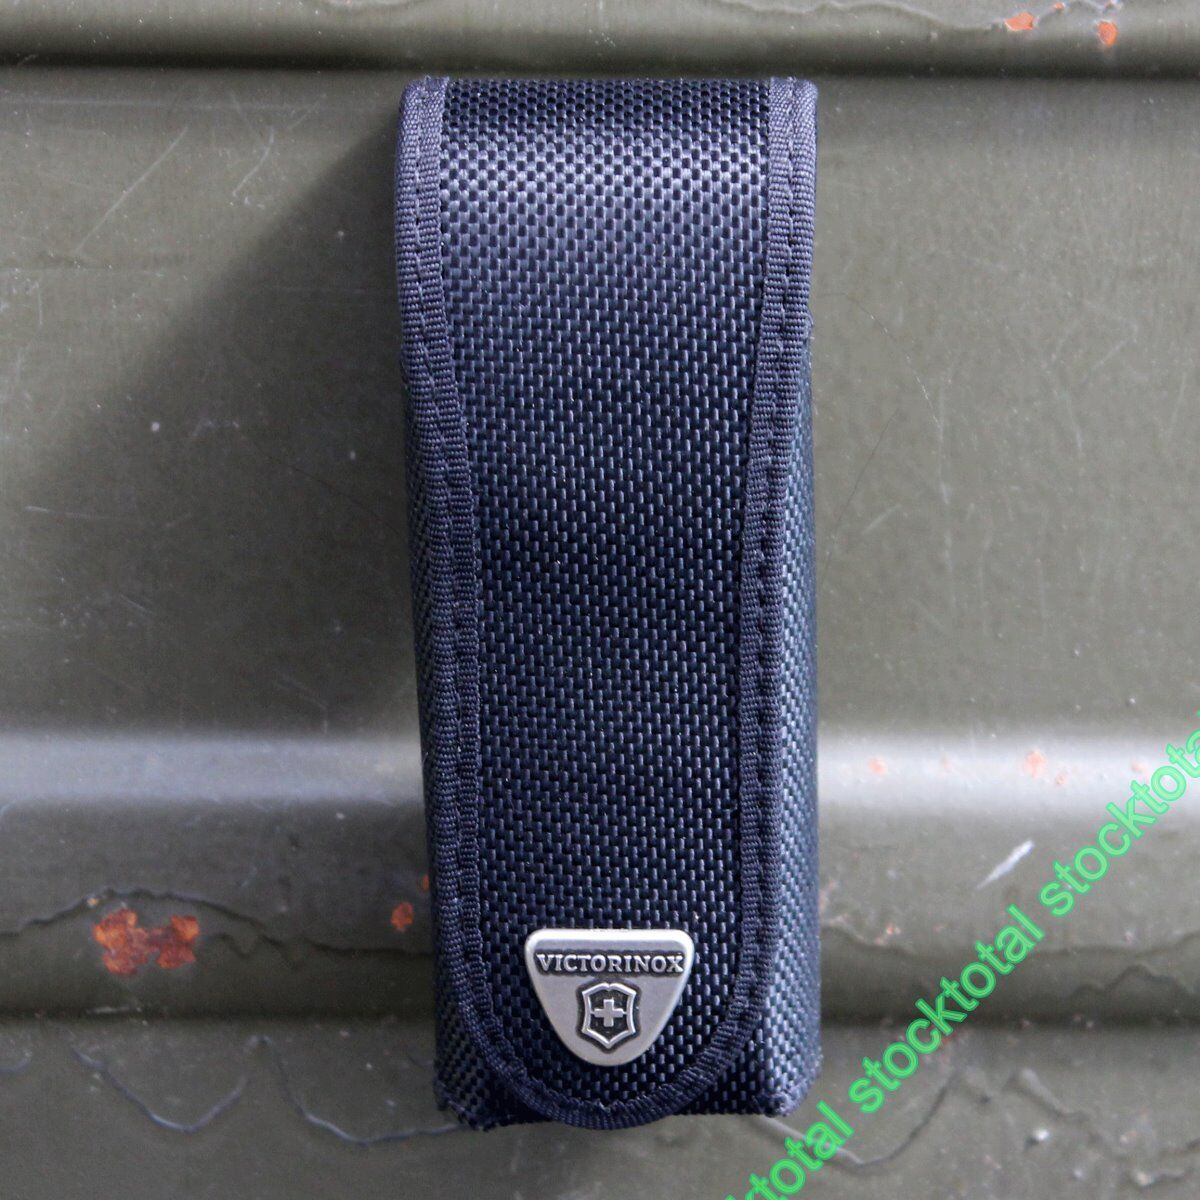 2 Funda nylon Victorinox 4.0547.3   free and fast delivery available